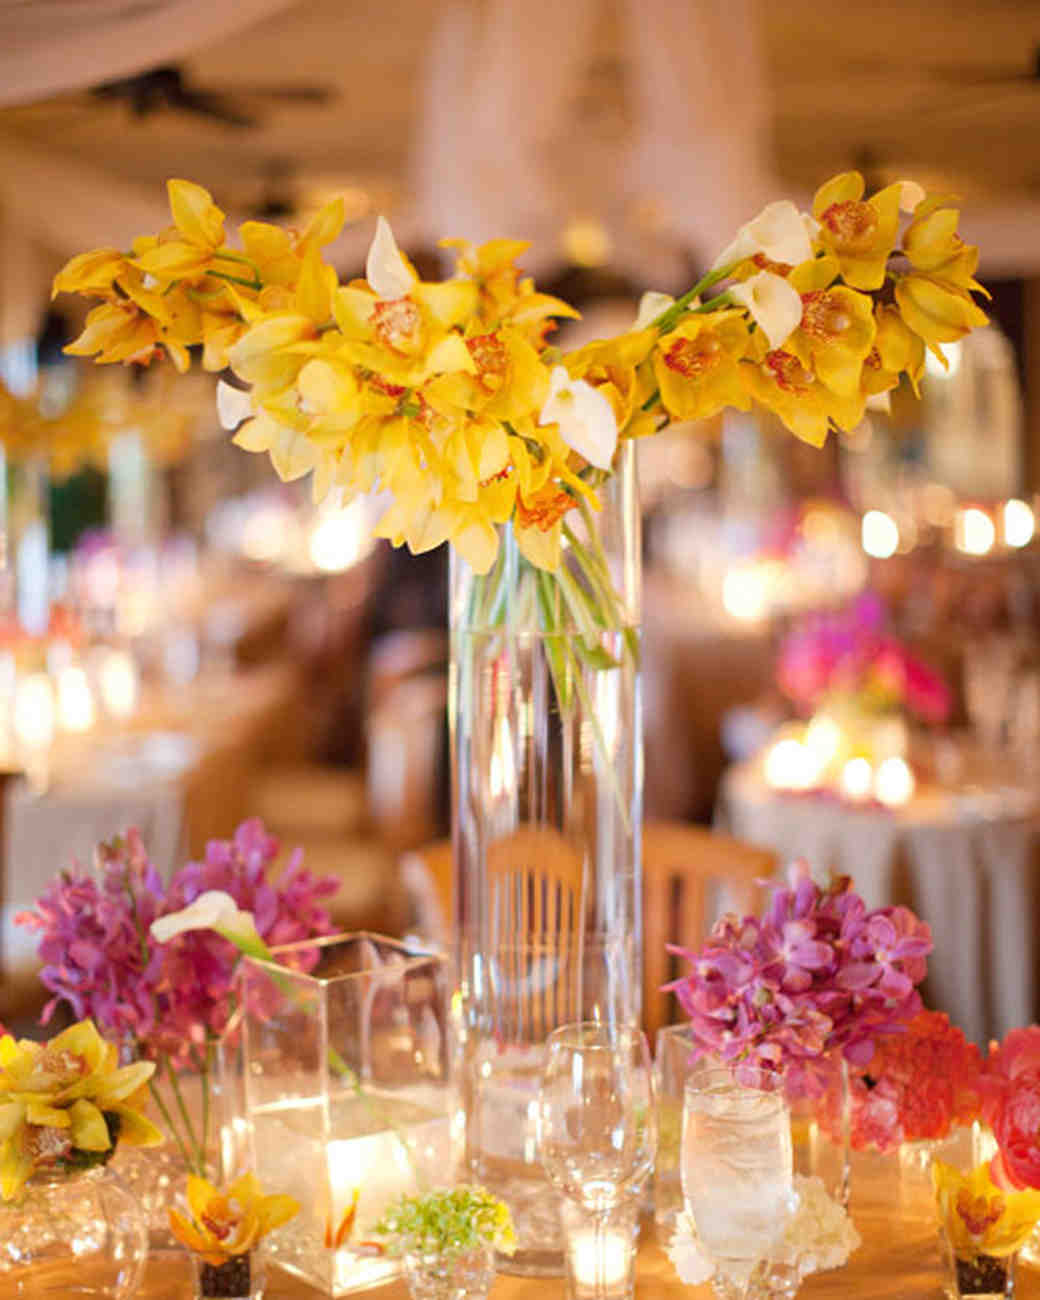 Wedding Flower Center Pieces: Glamorous Wedding Centerpieces